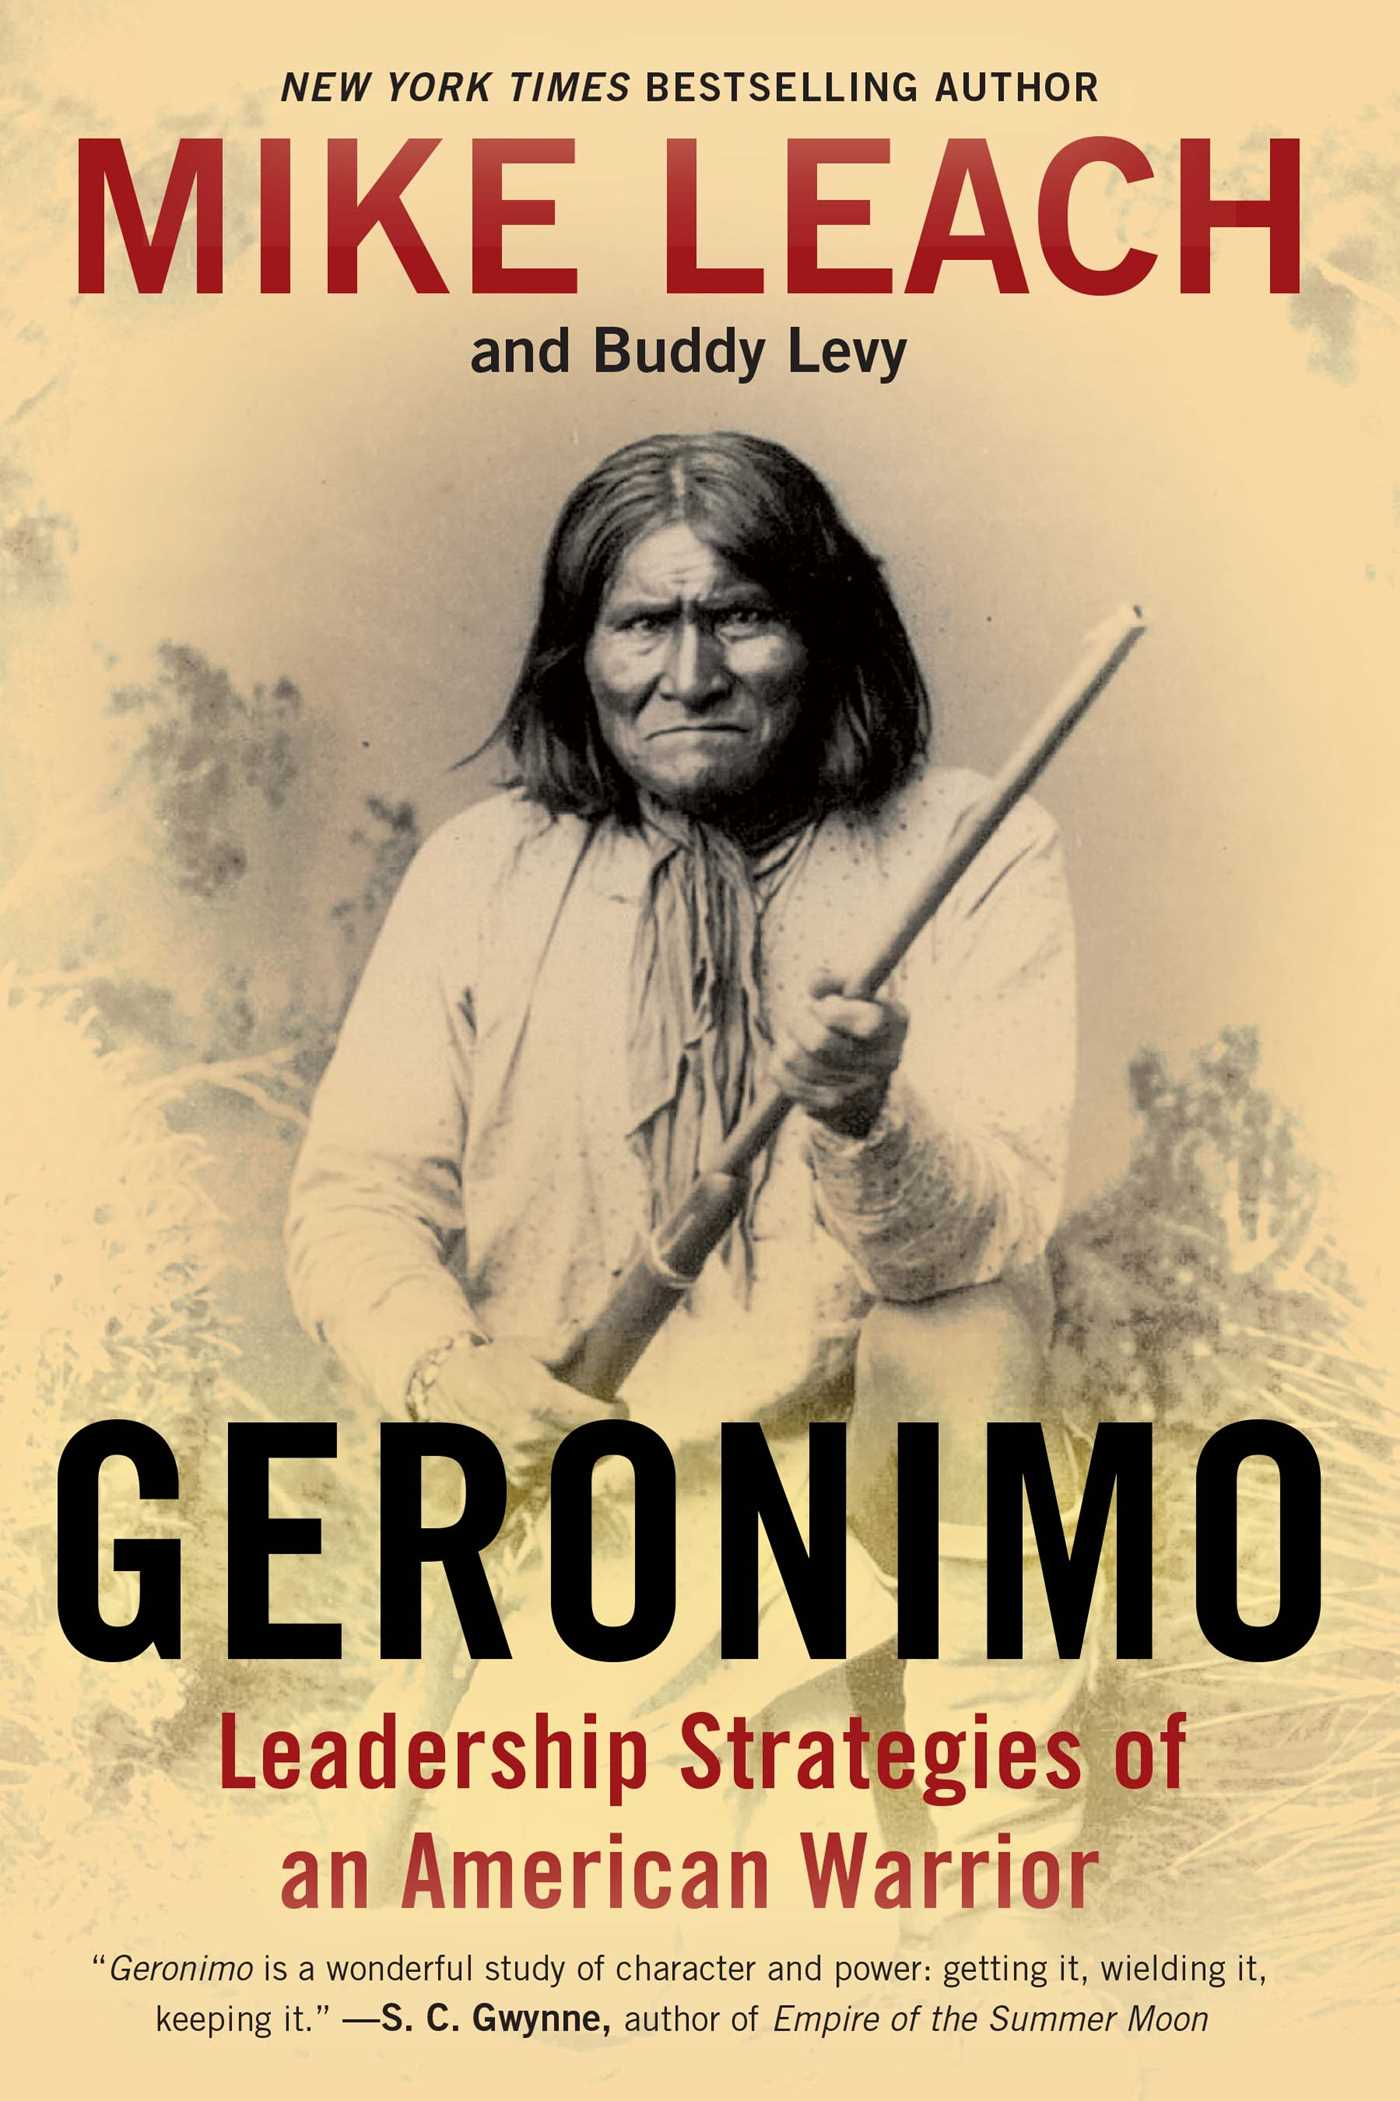 Geronimo-9781476734989_hr